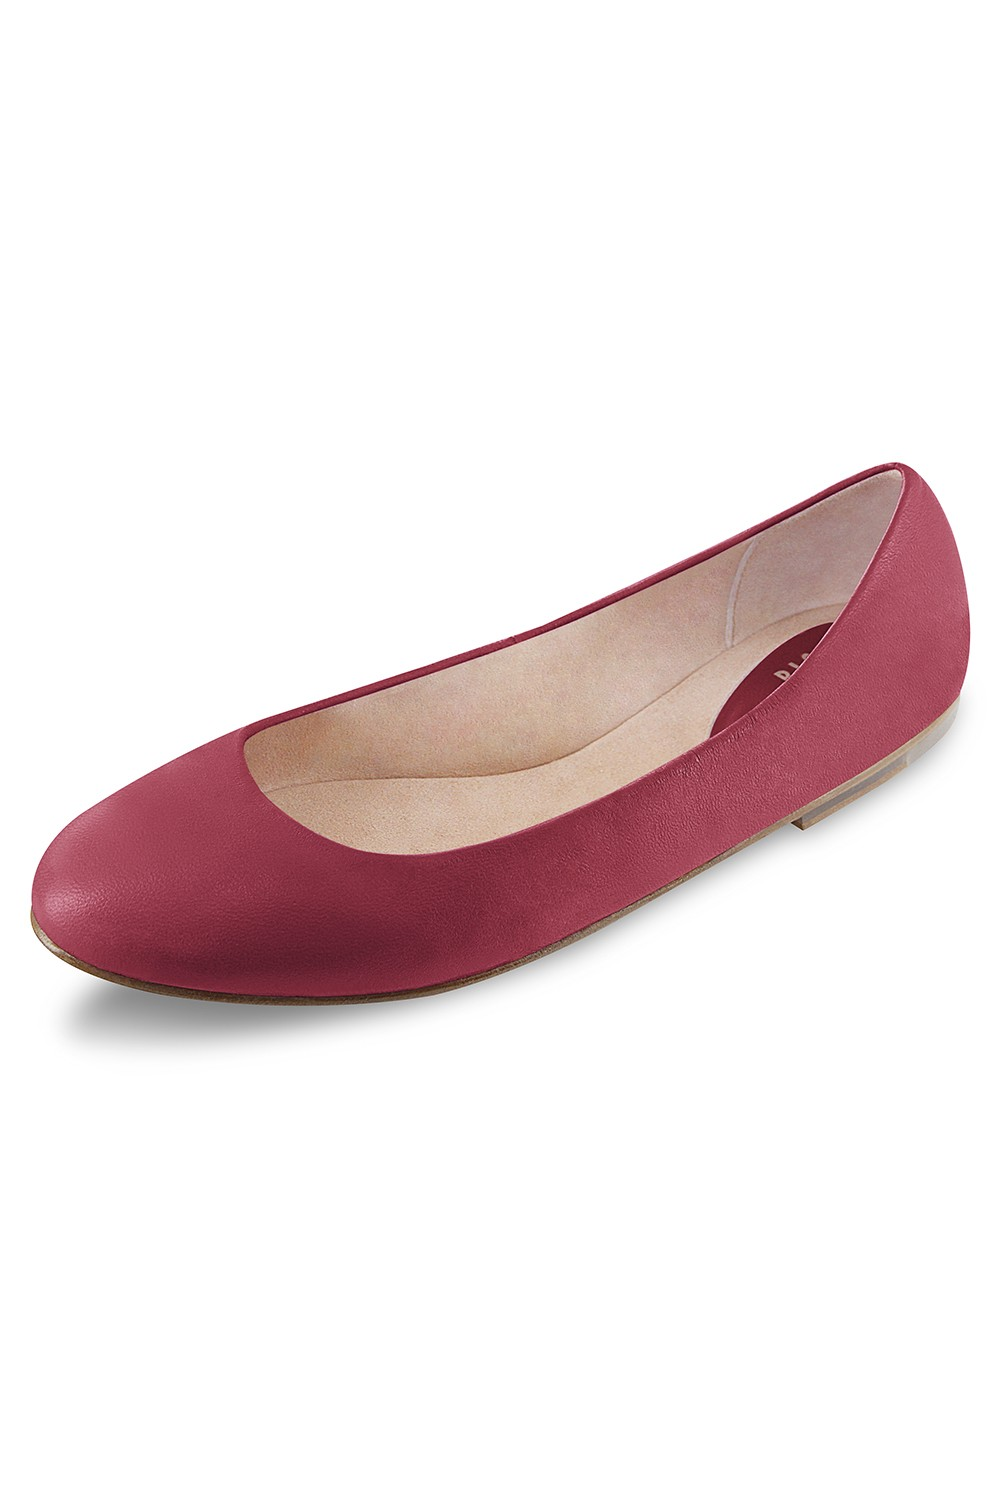 Arabian Ladies Ballerina Womens Fashion Shoes